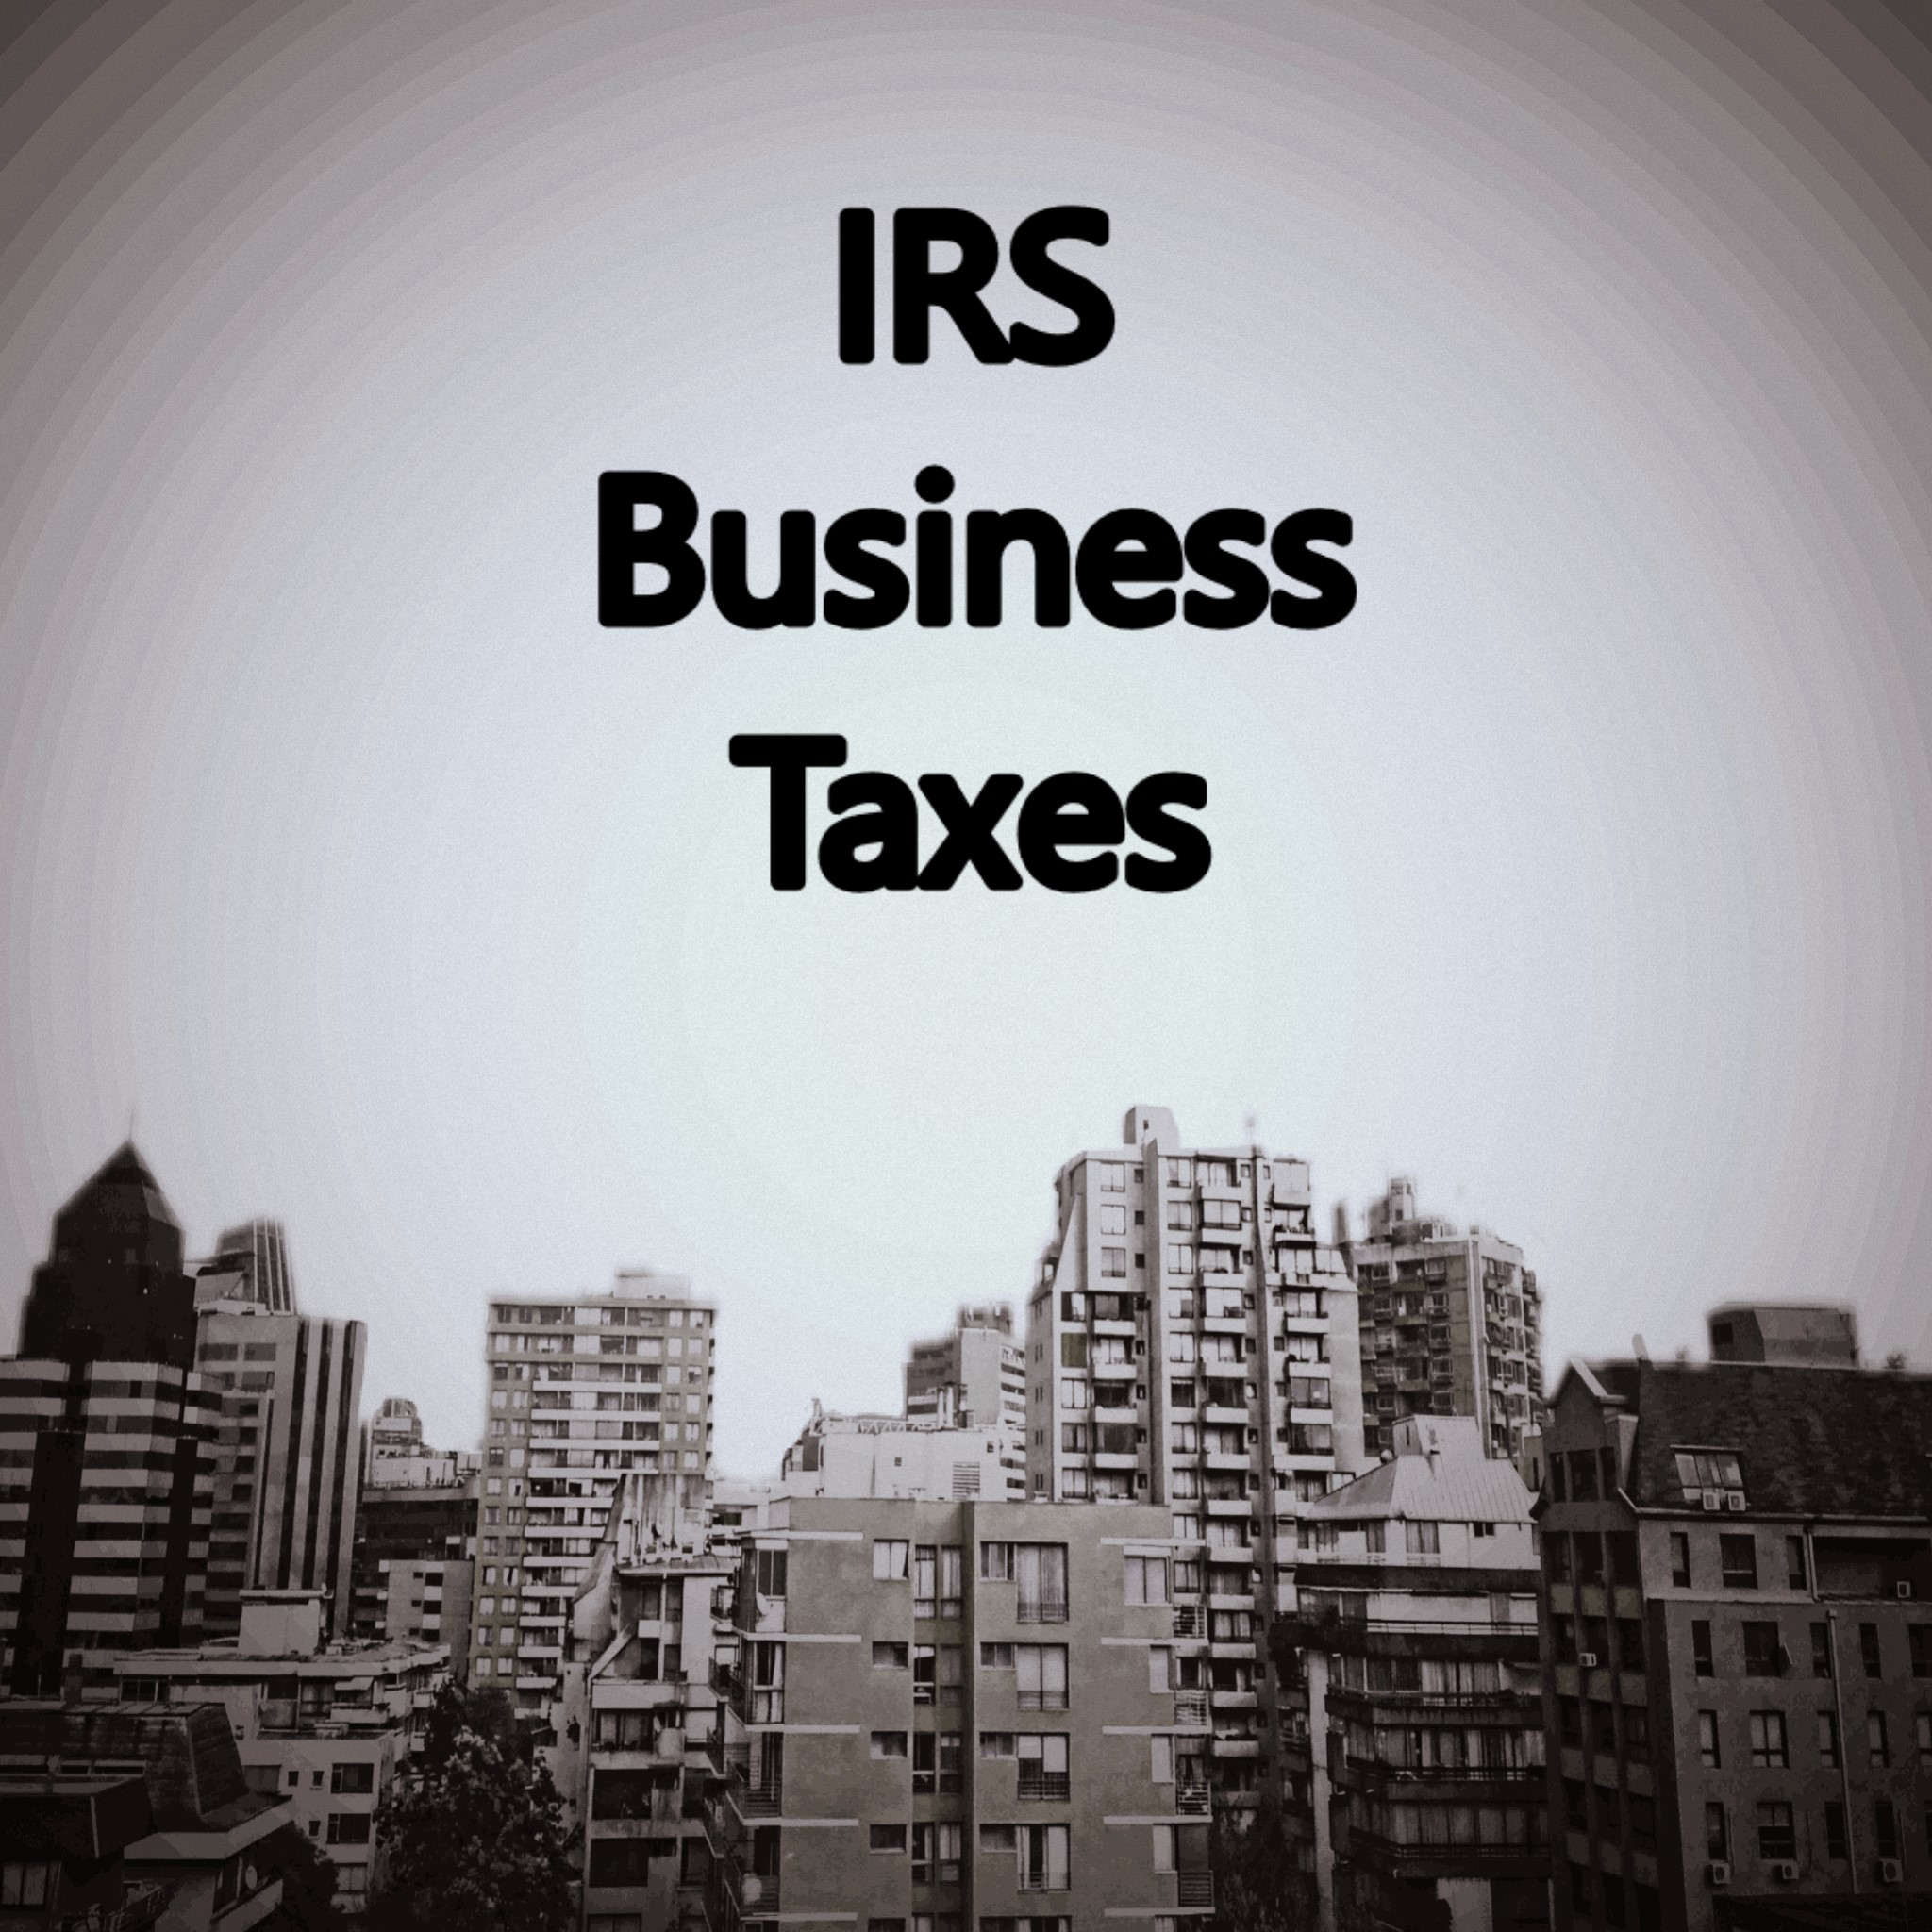 Plan Now So Your Business Does Not Owe Back Taxes Later